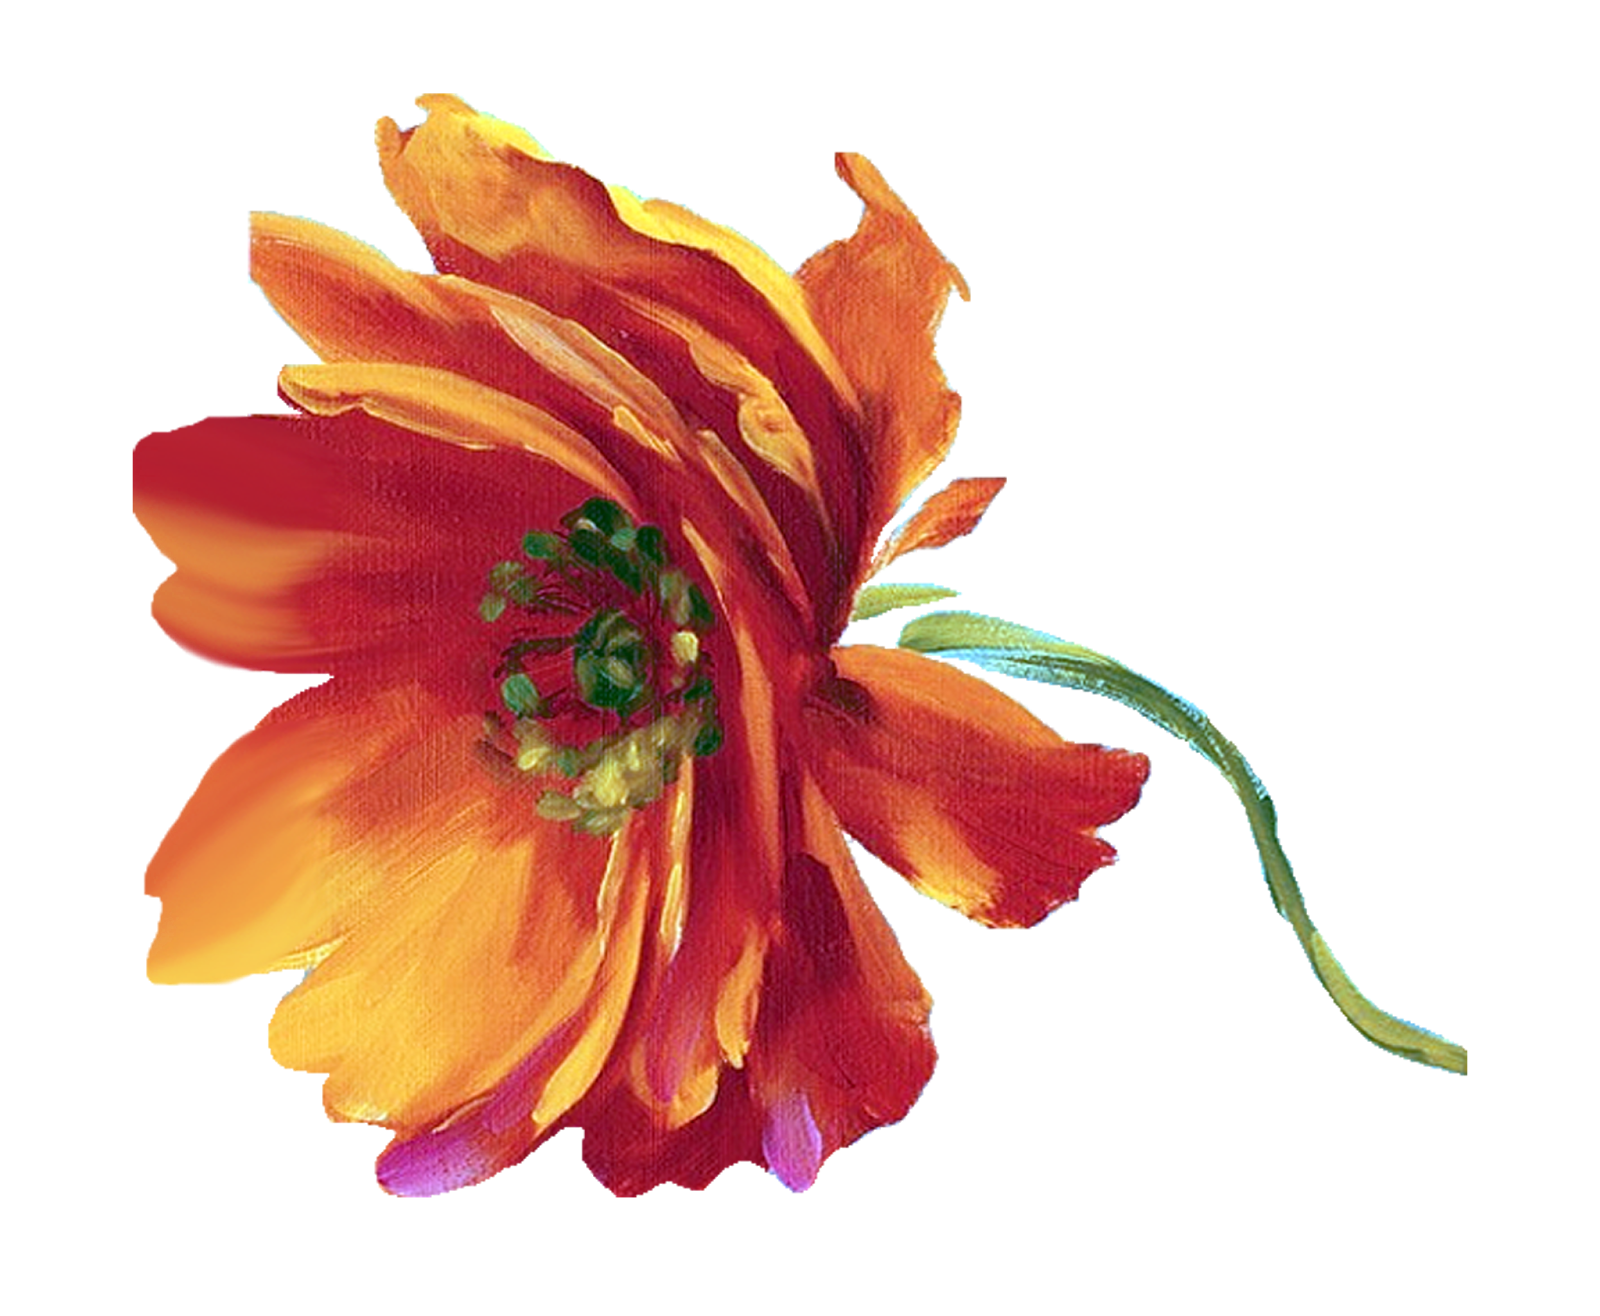 Flower reaching for sun clipart. Decoupage painting png pattern